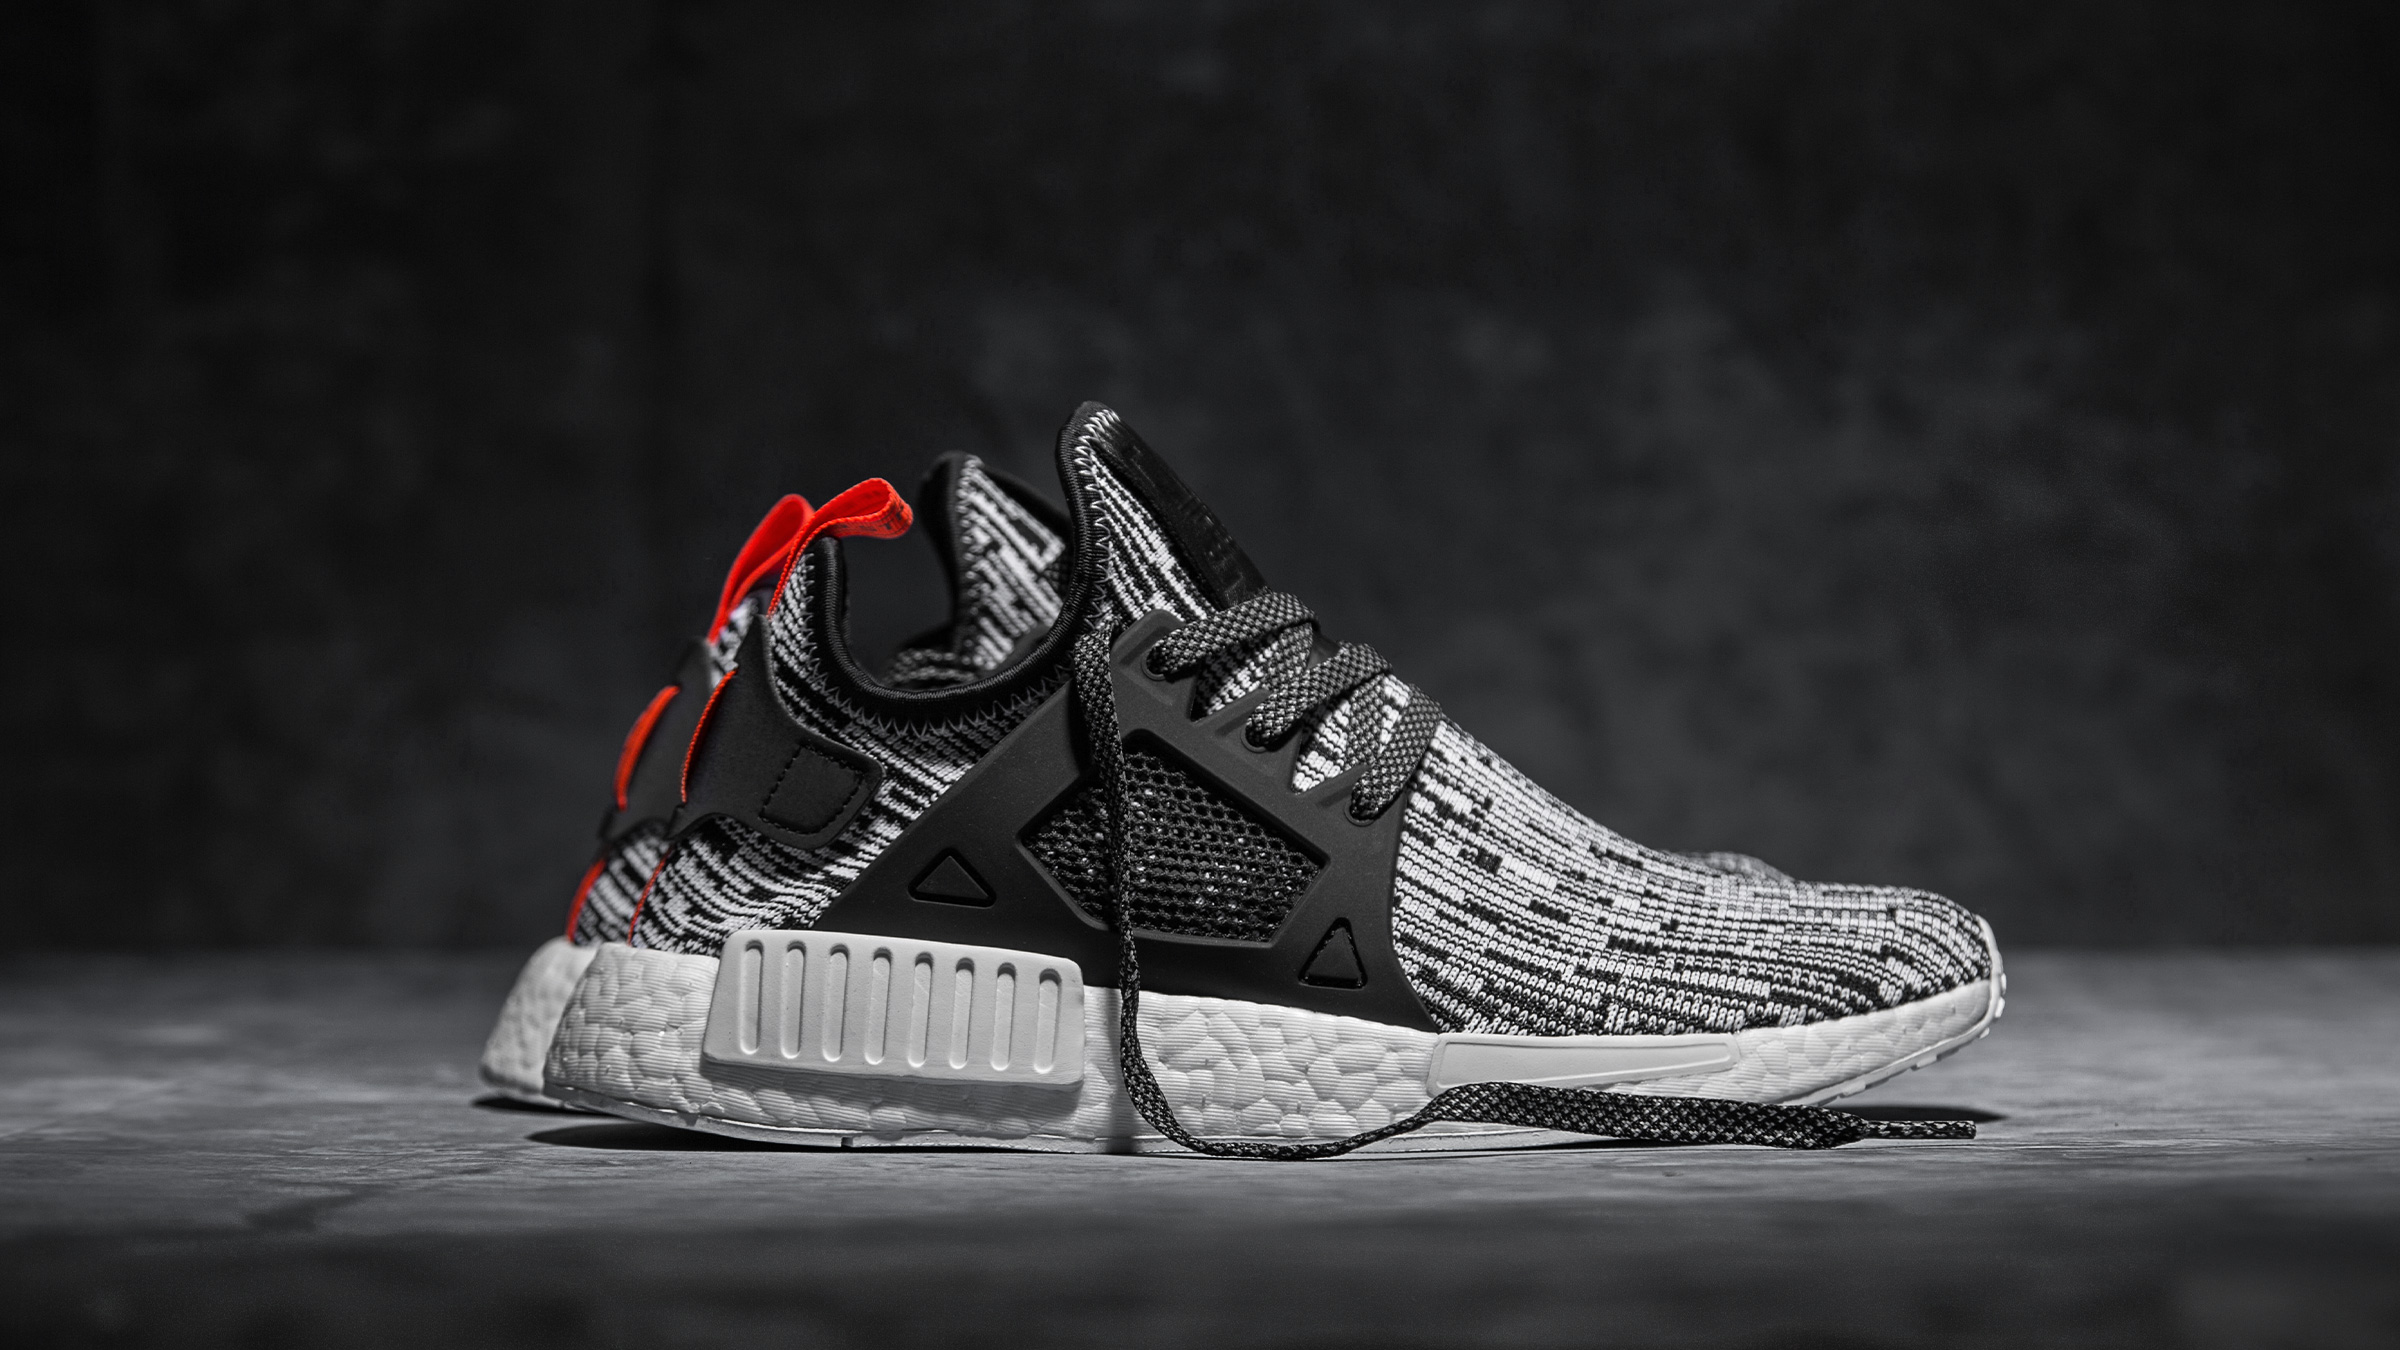 nmd_xr1_s32216_2709_main_